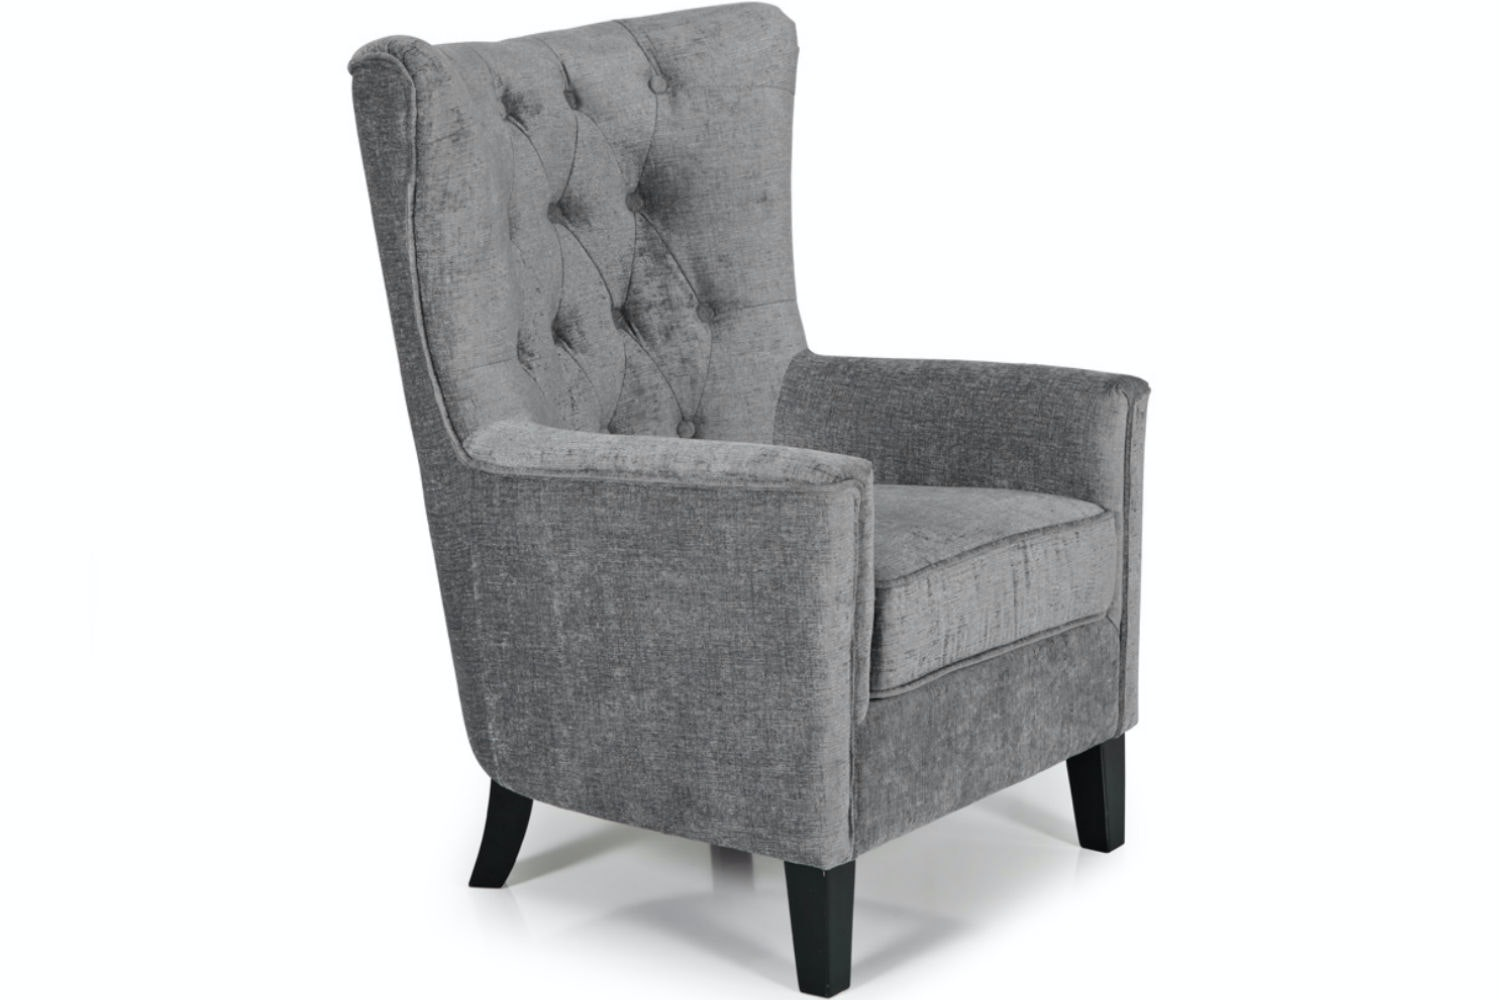 dalton-serene-chair-steel